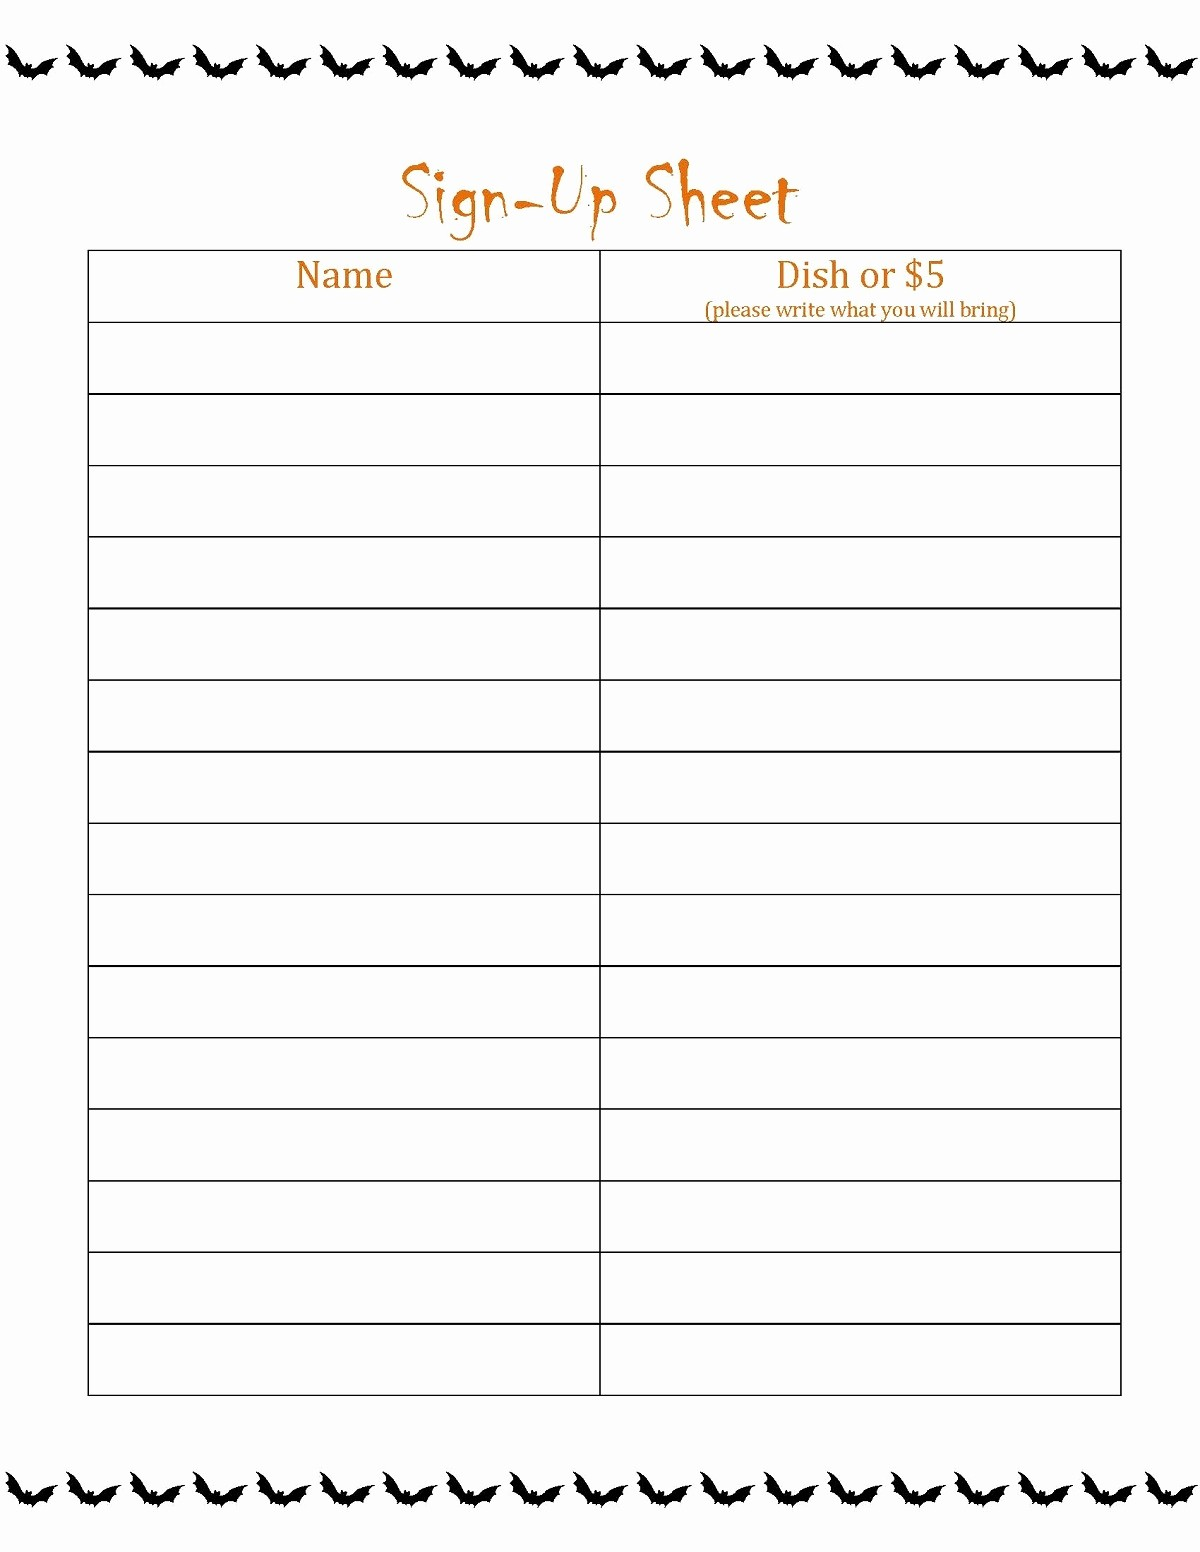 Printable Sign In Sheets Template Luxury Blank Sign Up Sheet Printable